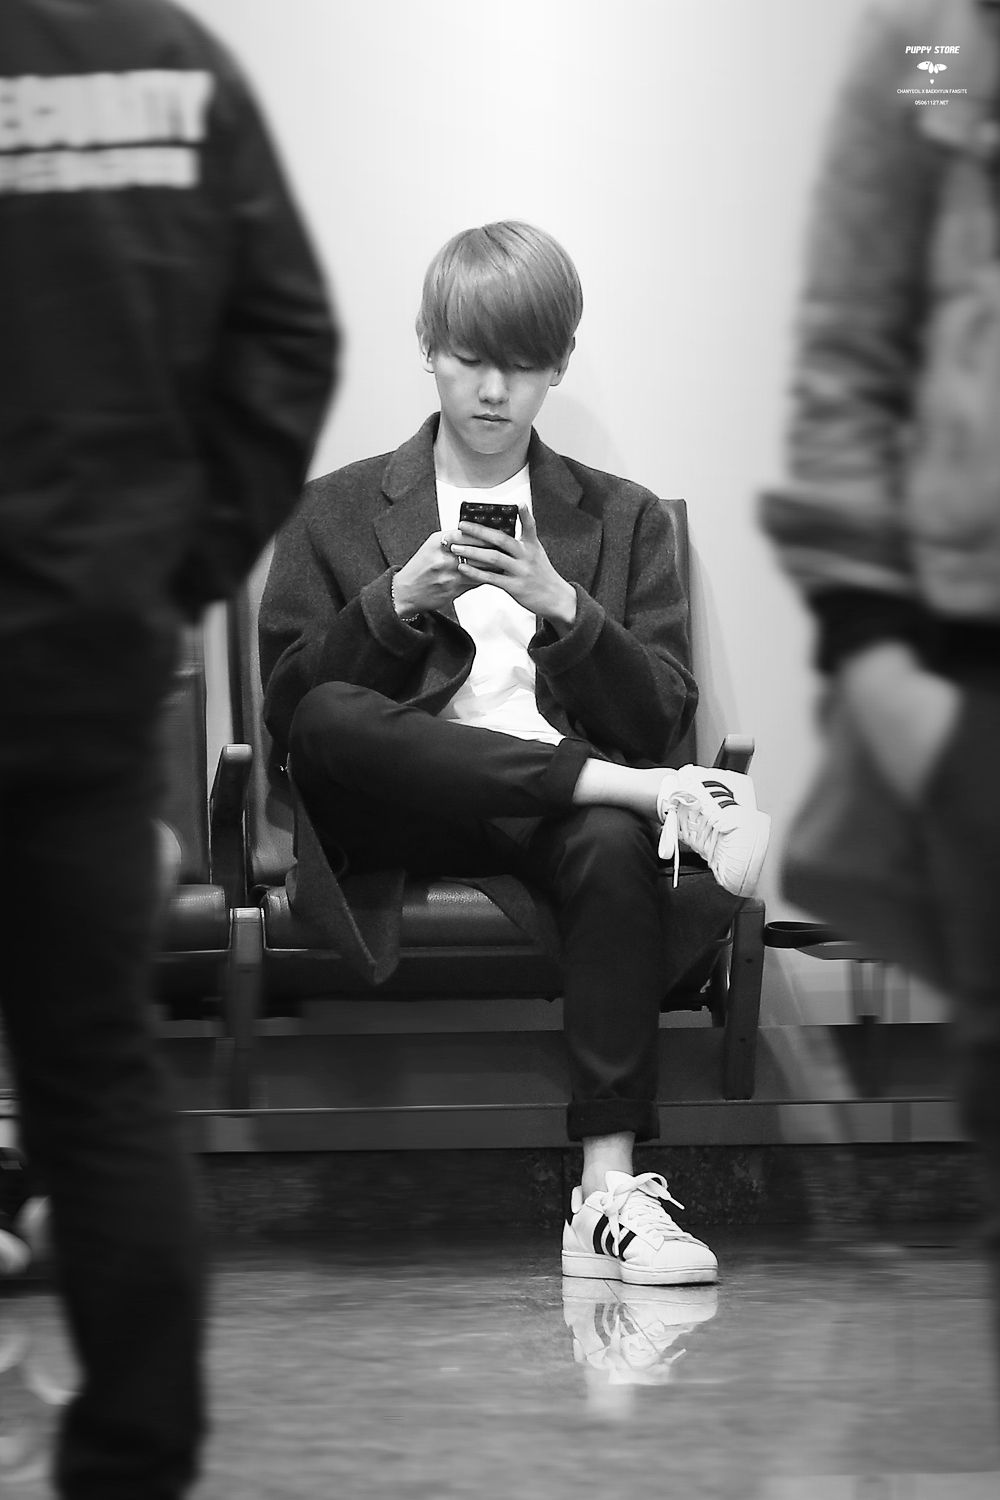 Baekhyun - 150408 Gimpo Airport departure and Beijing Airport arrival - 5/6 Credit: Puppy Store. (김포공항 출국, 베이징공항 입국)